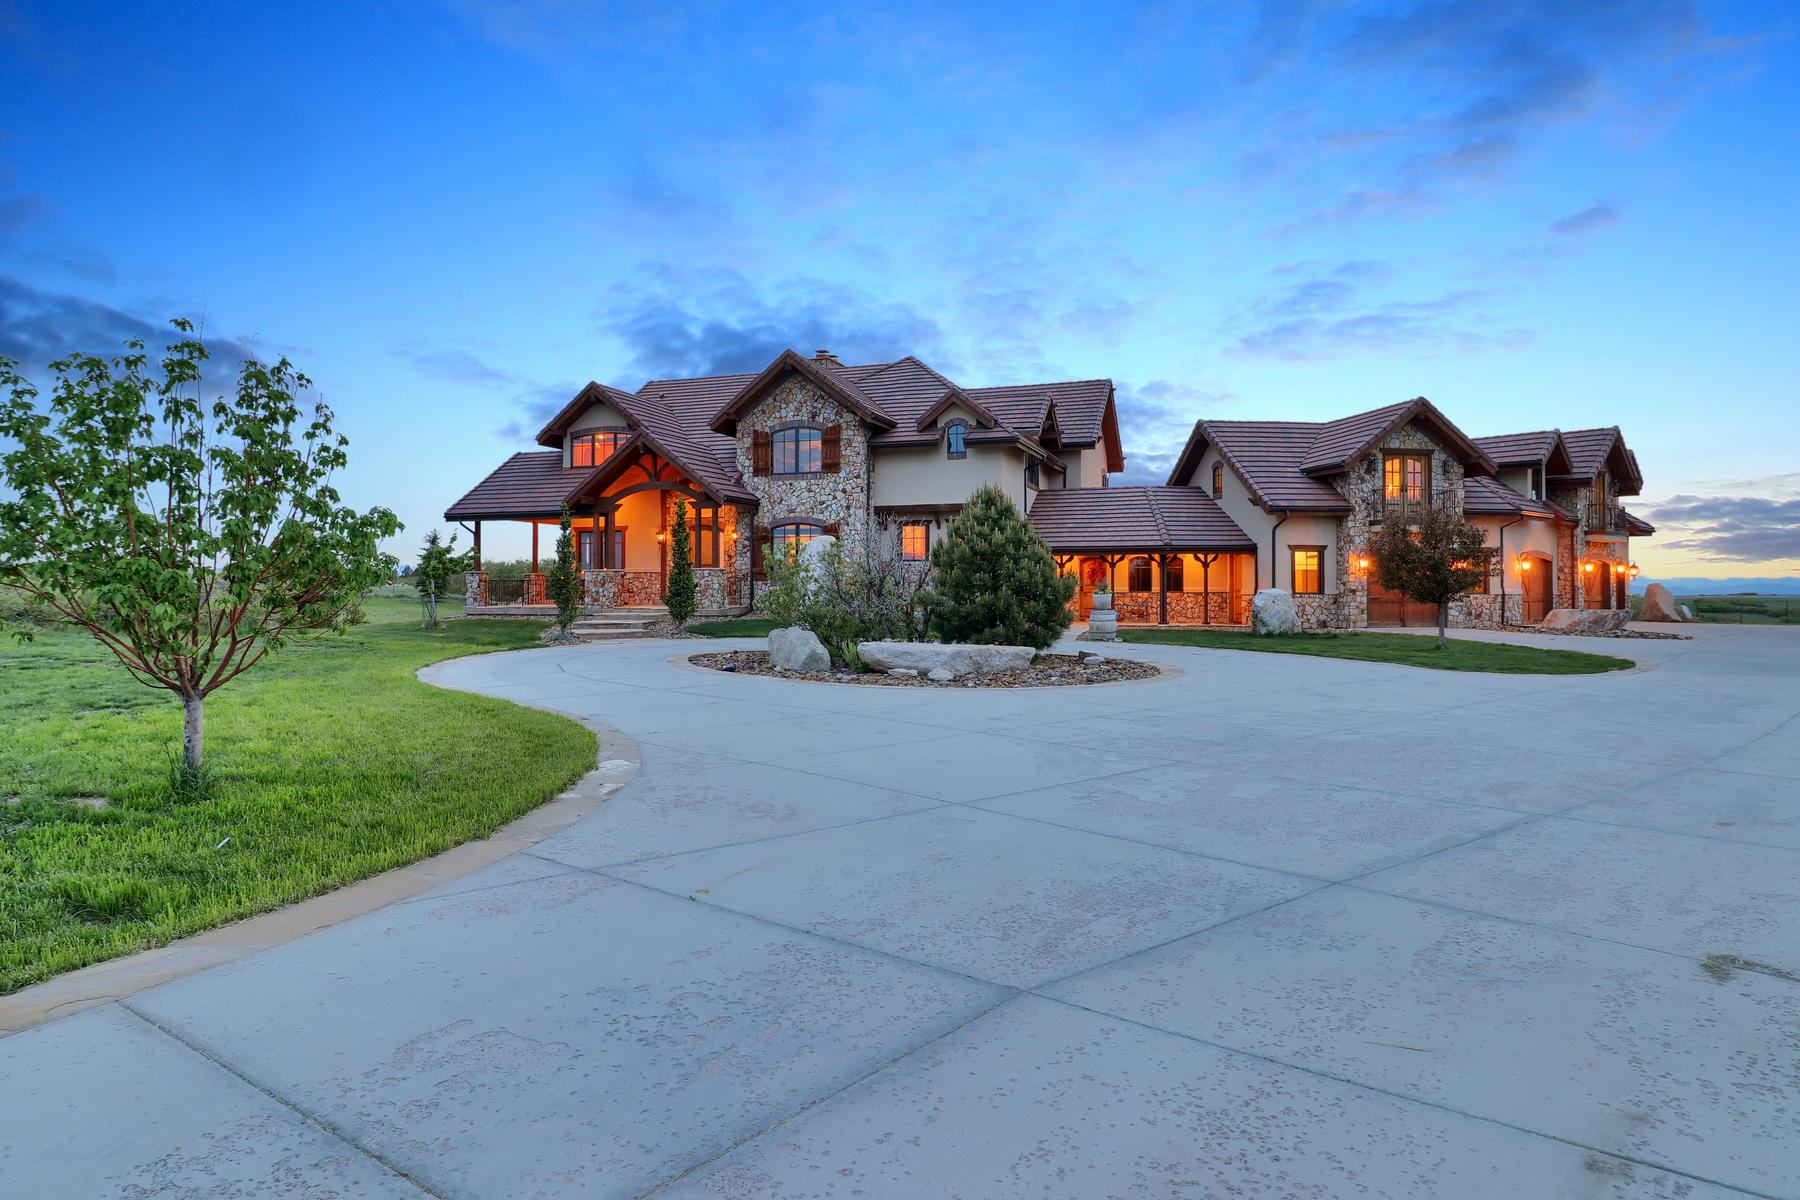 Single Family Home for Active at A Setting Like No Other 7663 Buffalo Trl Castle Rock, Colorado 80108 United States